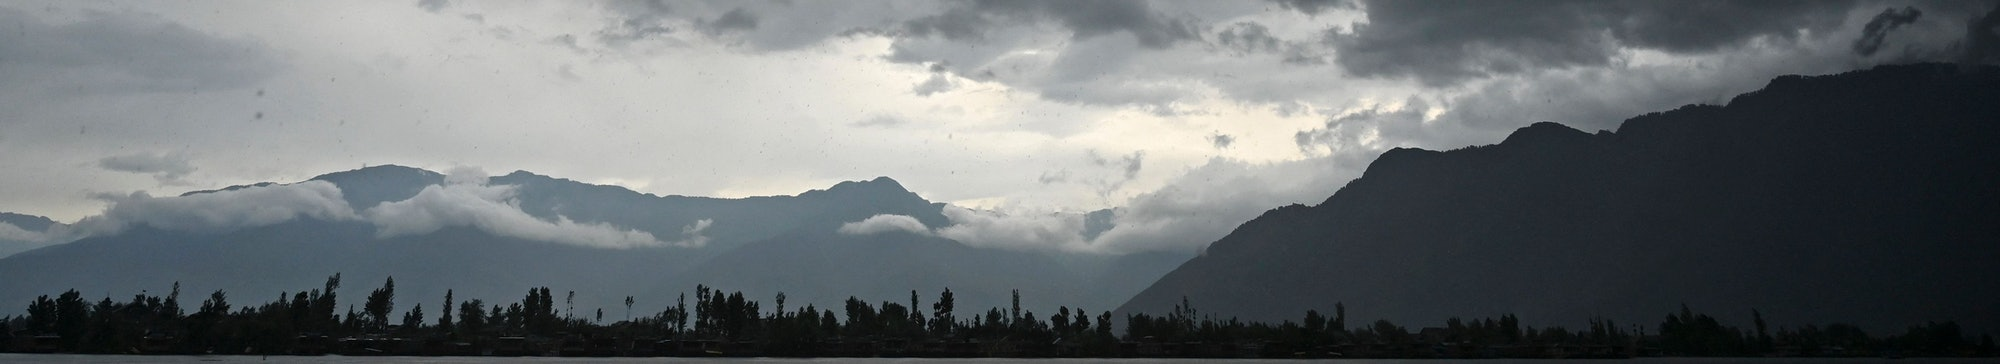 A man steers a boat as dark clouds loom over Dal Lake during a rainfall in Srinagar on June 1, 2021. (Photo by TAUSEEF MUSTAFA / AFP) (Photo by TAUSEEF MUSTAFA/AFP via Getty Images)